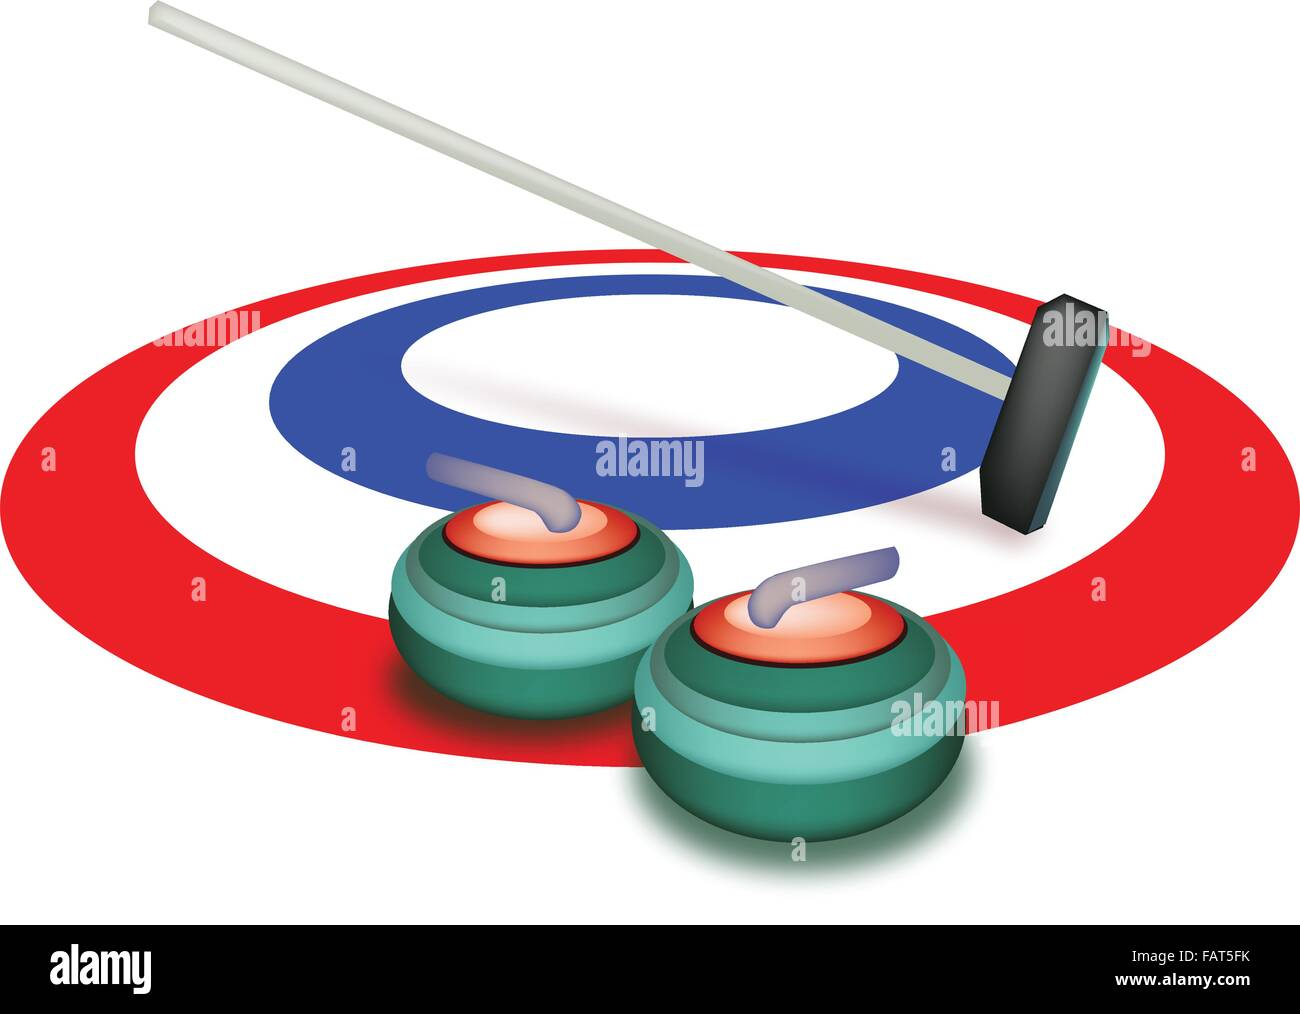 Curling stone clipart